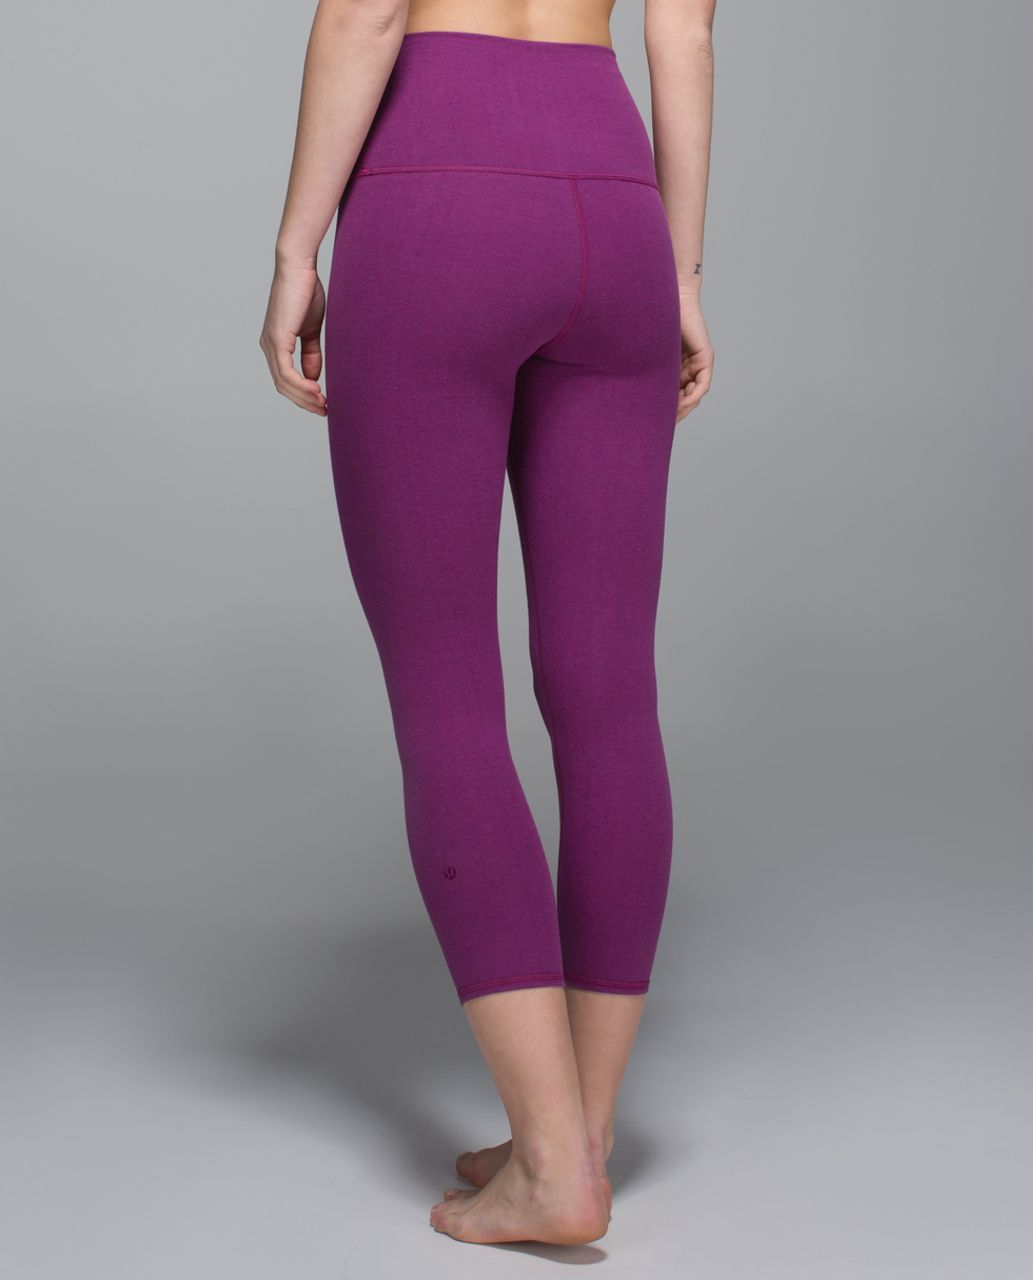 Lululemon Wunder Under Crop II *Cotton (Roll Down) - Heathered Regal Plum